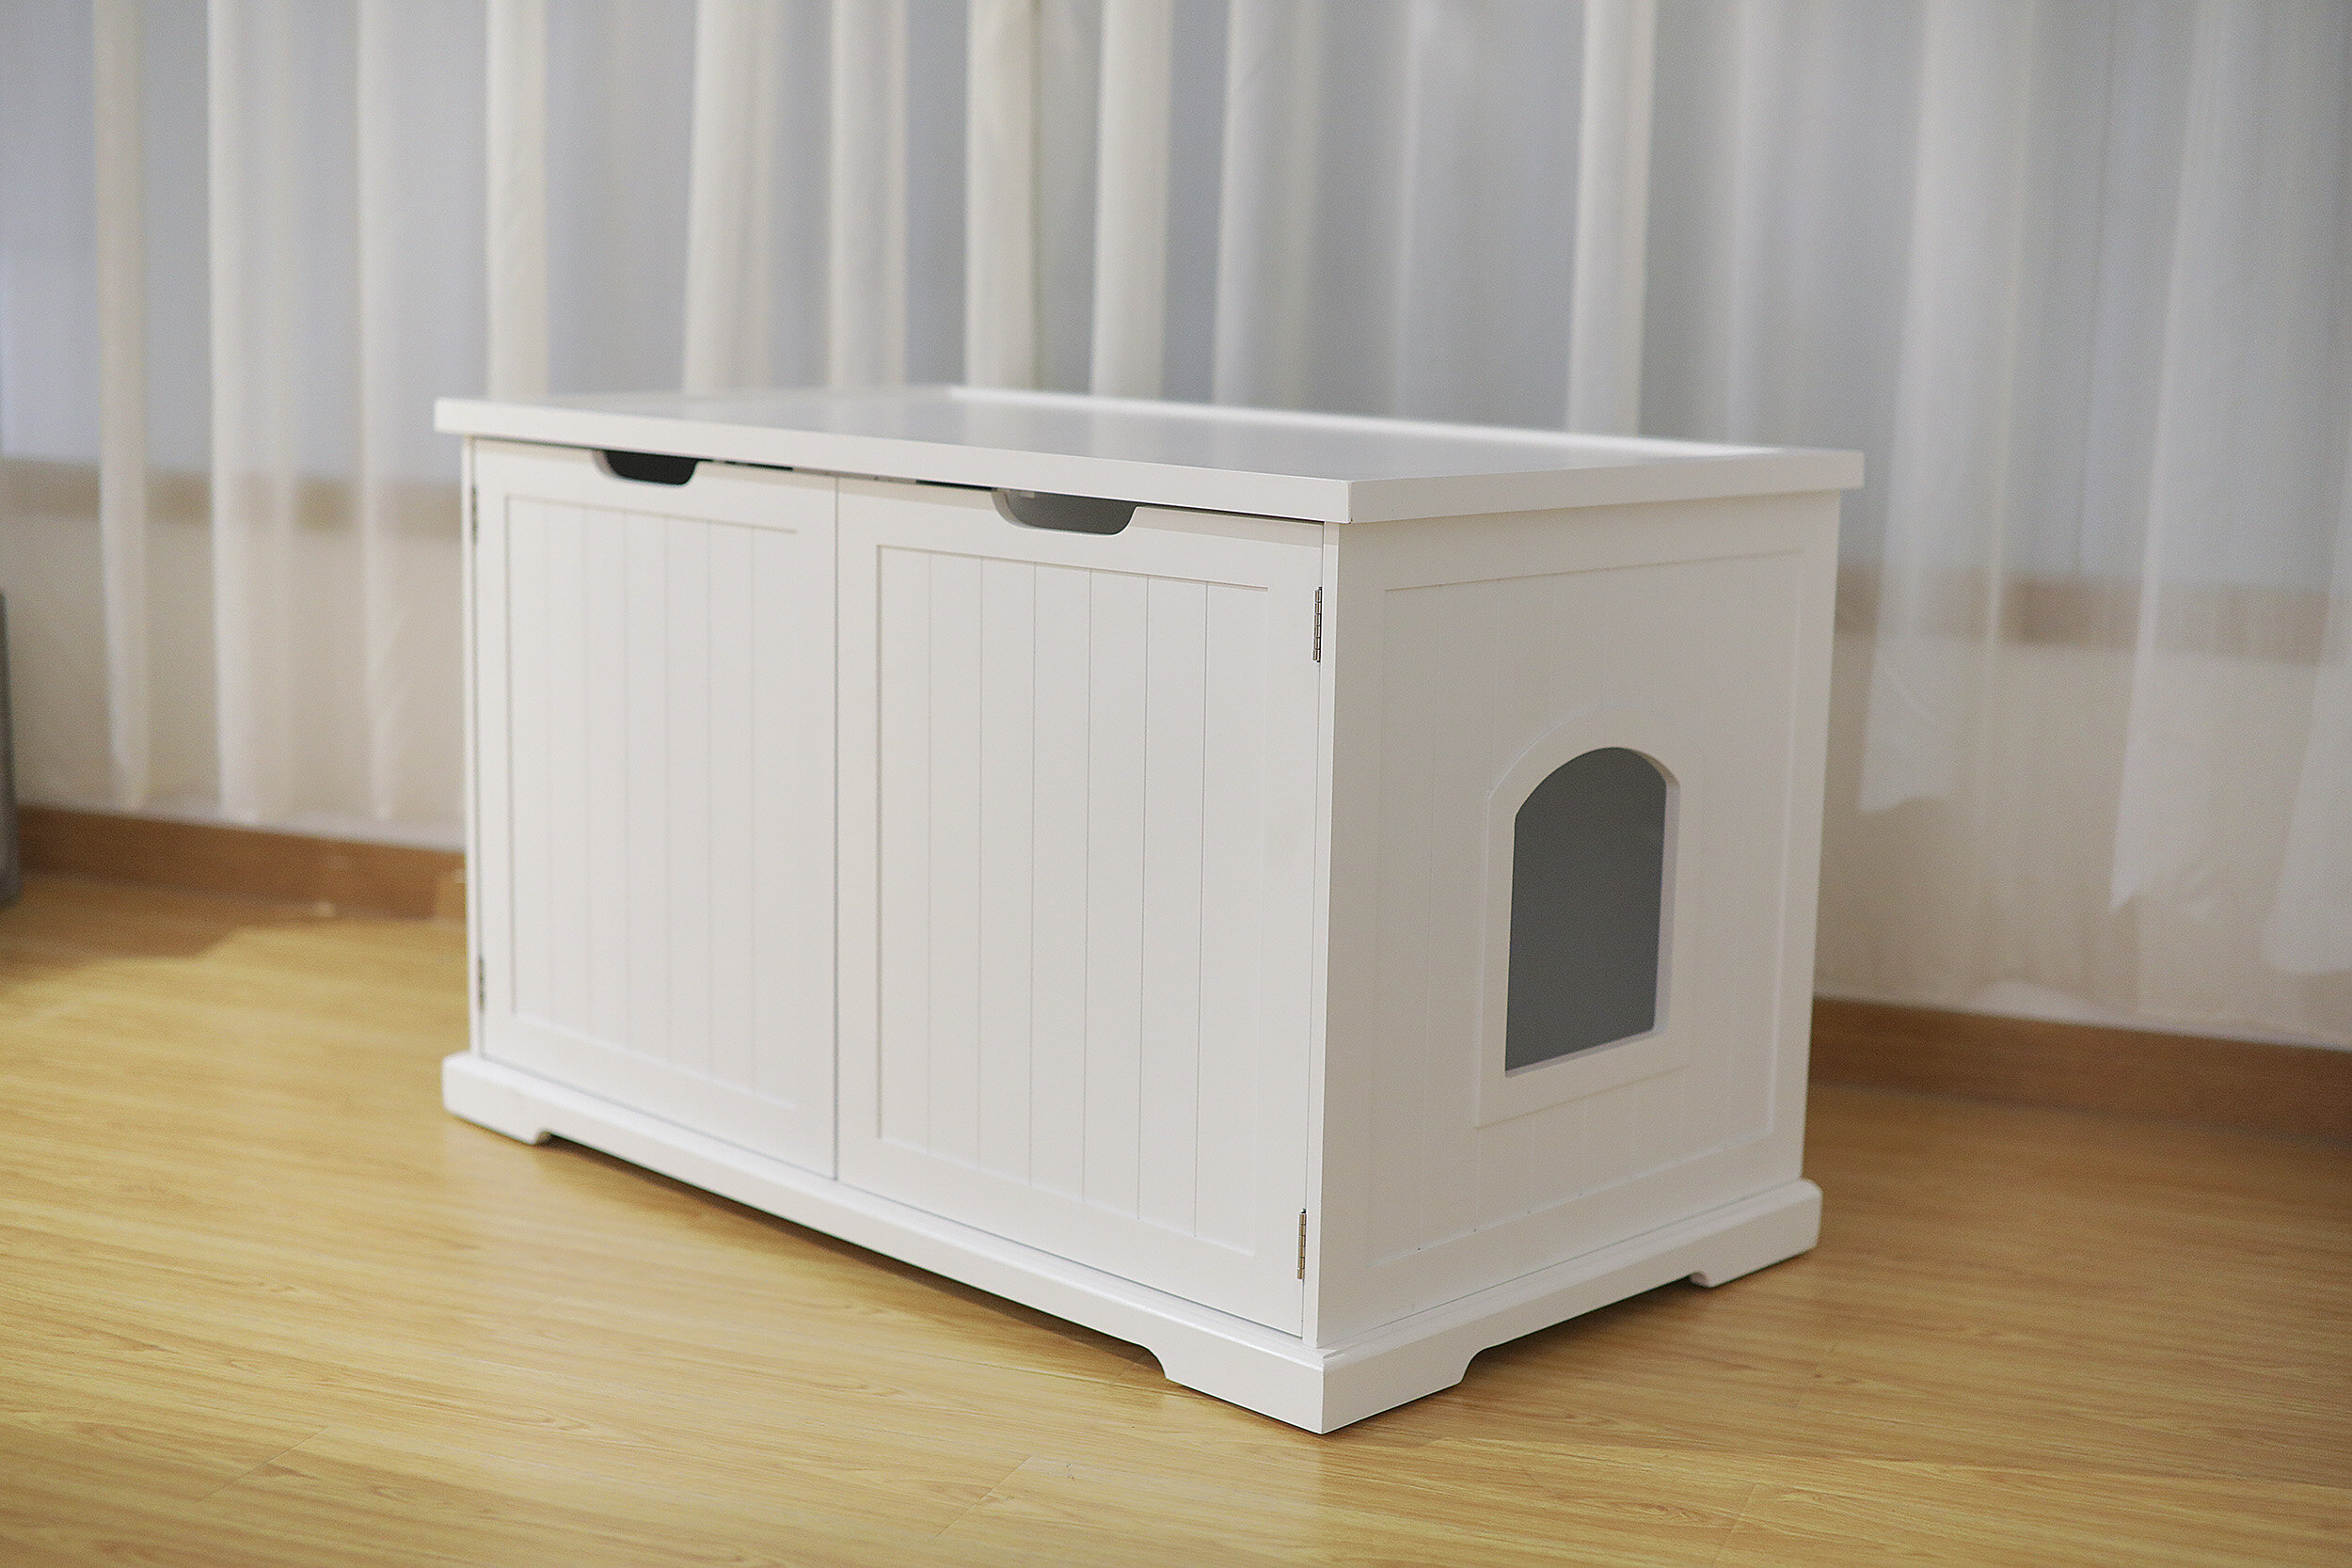 around cat a litter furniture home decor box bench curtain ideas